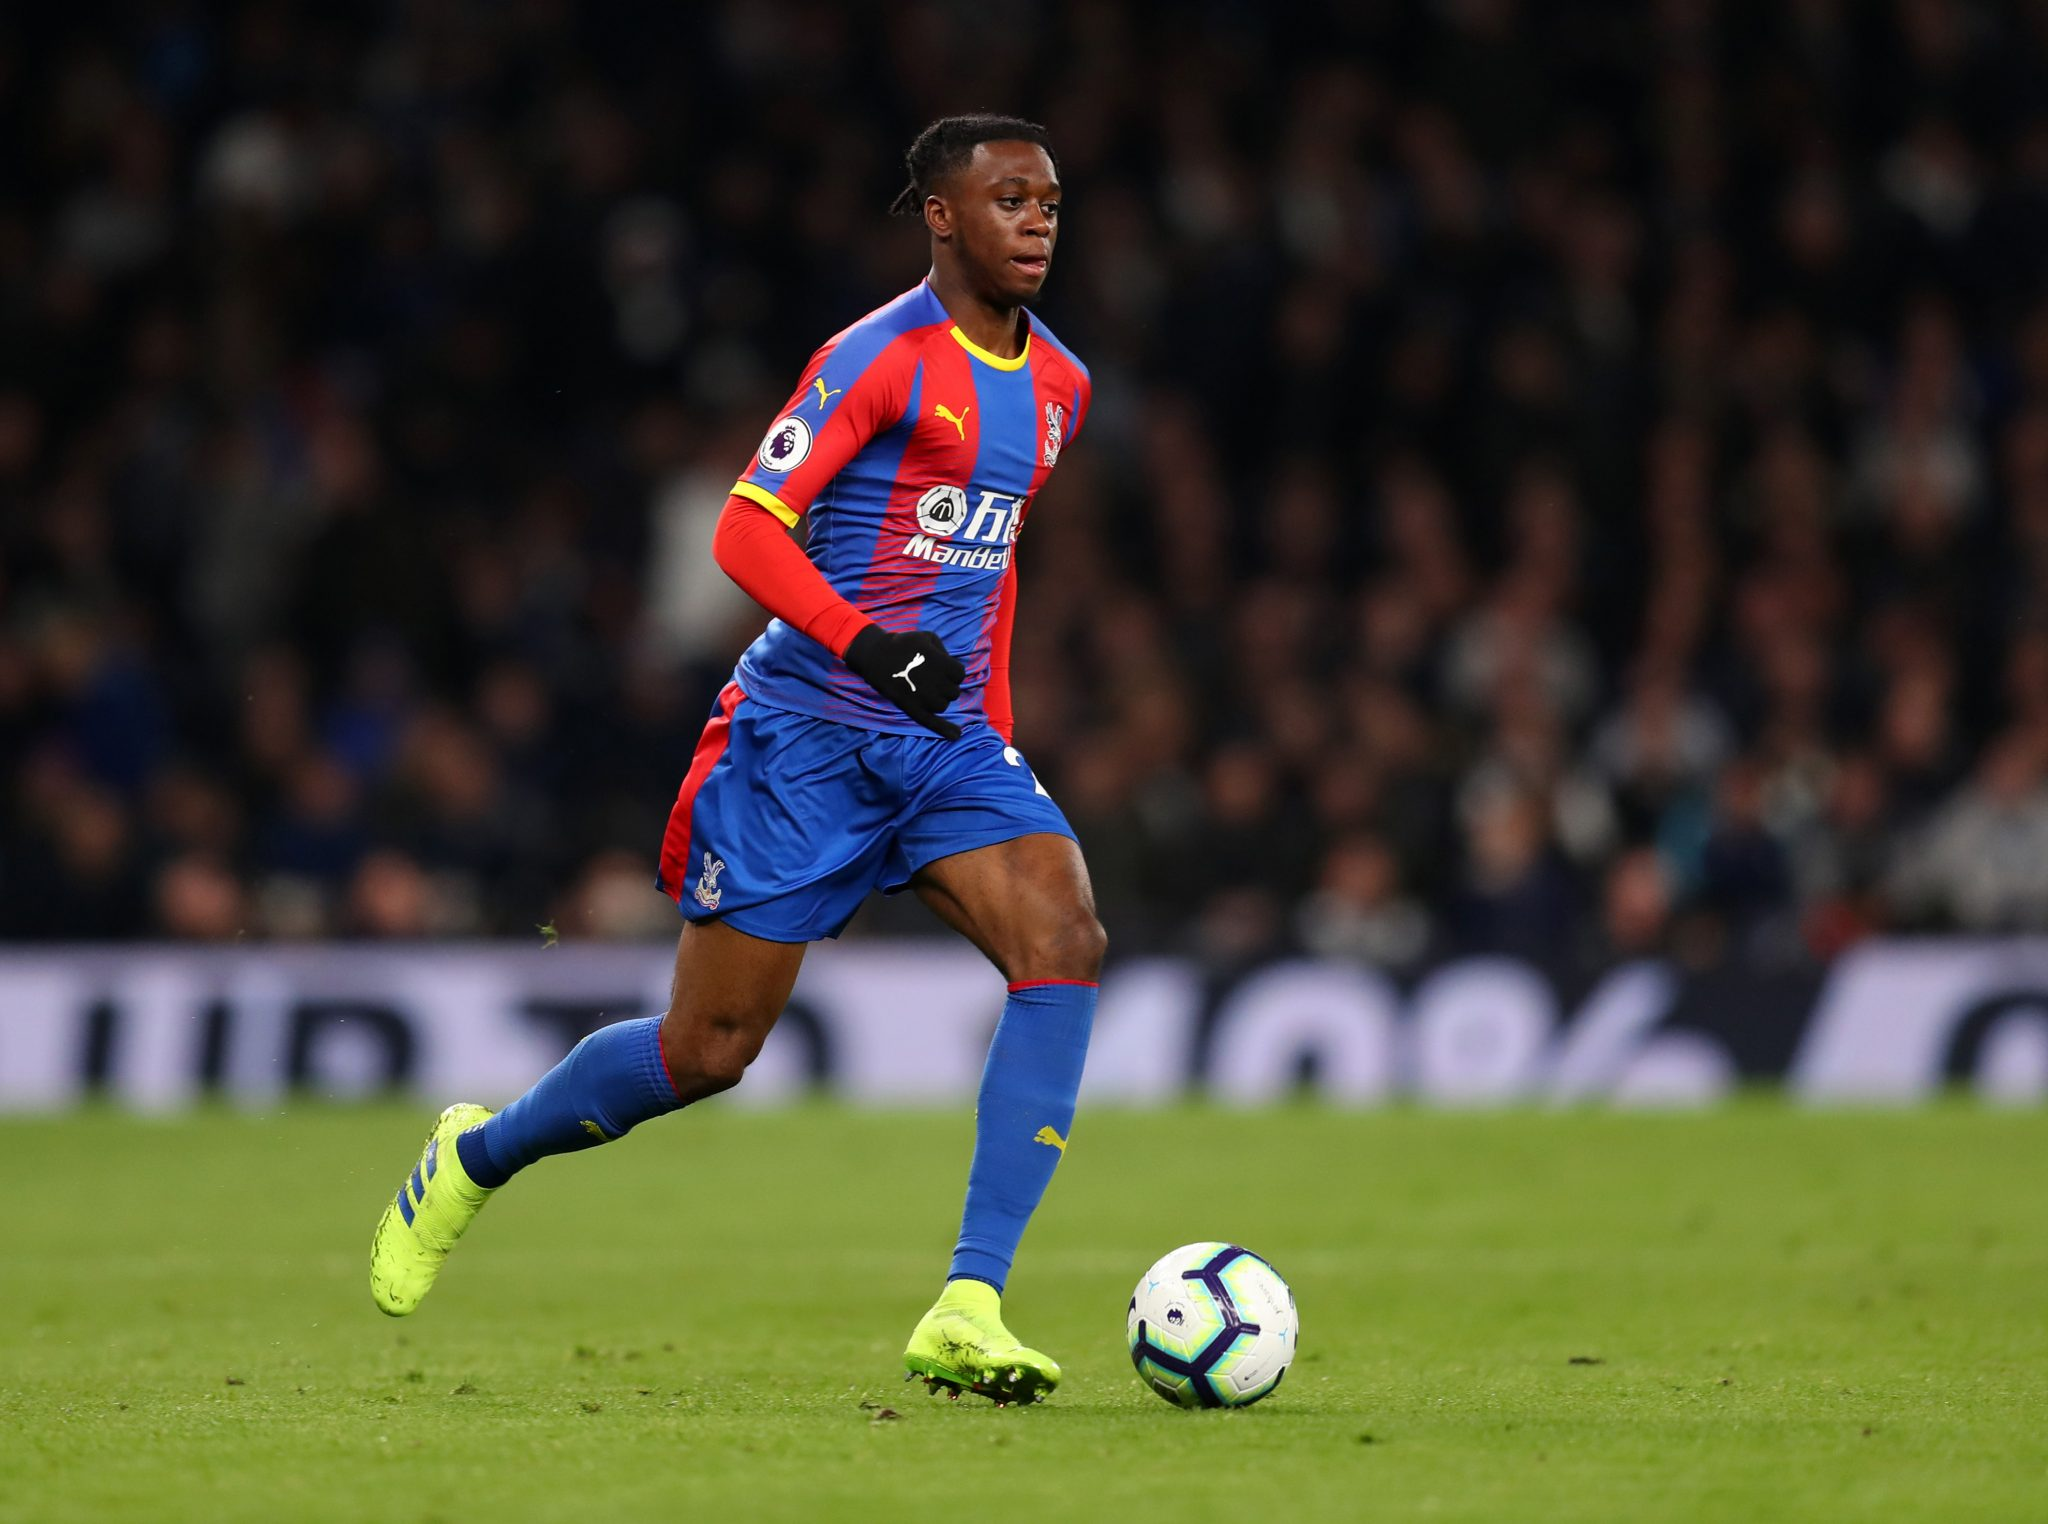 Man Utd 'make substantial bid' for Aaron Wan-Bissaka